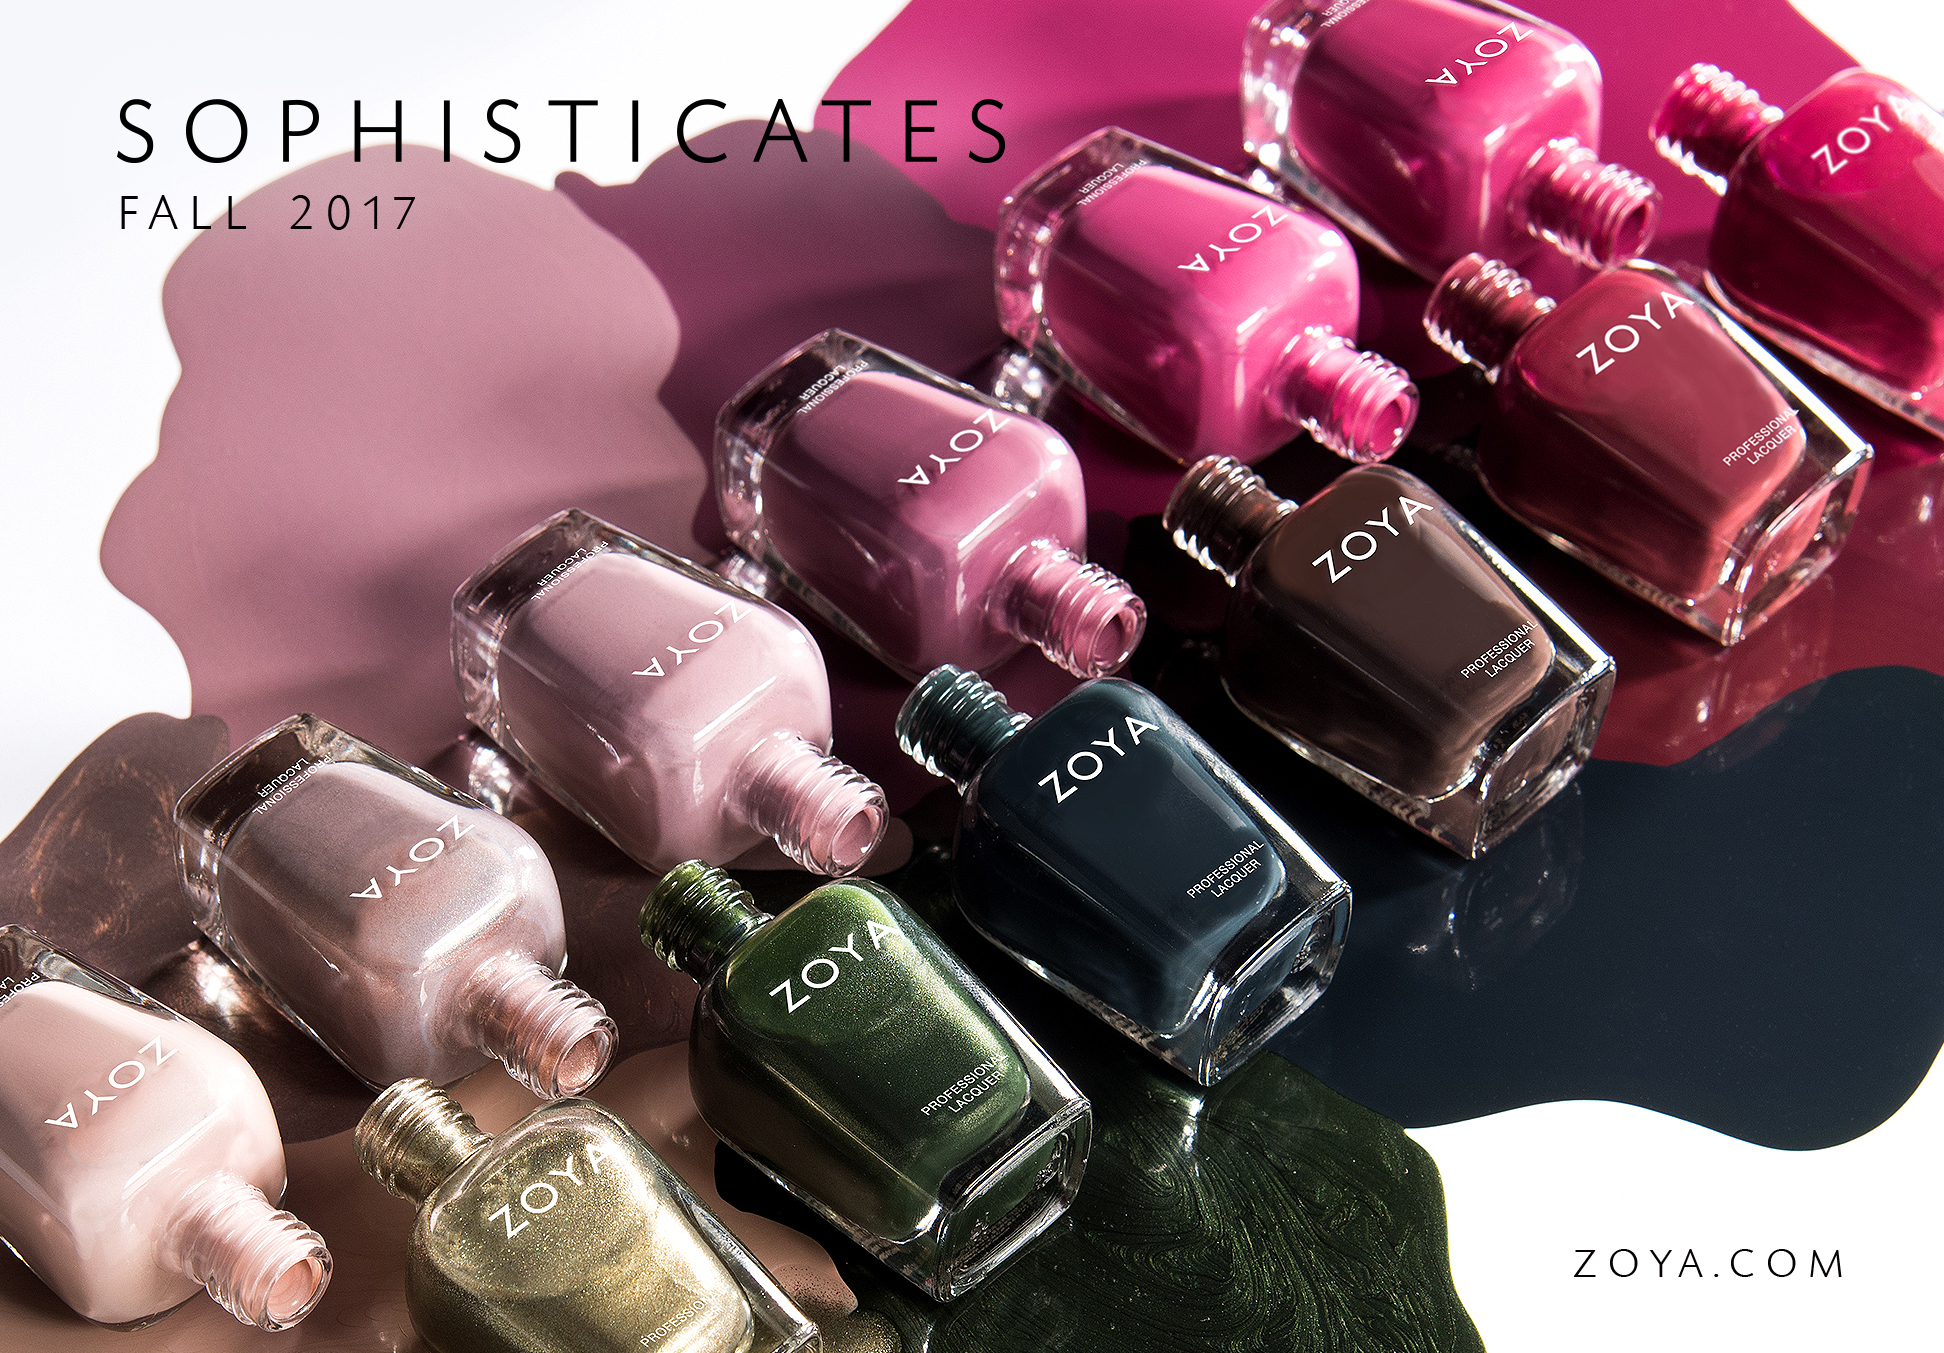 Zoya Fall 2017, Zoya, Fall 2017 collection, nail polish, nail polish collection